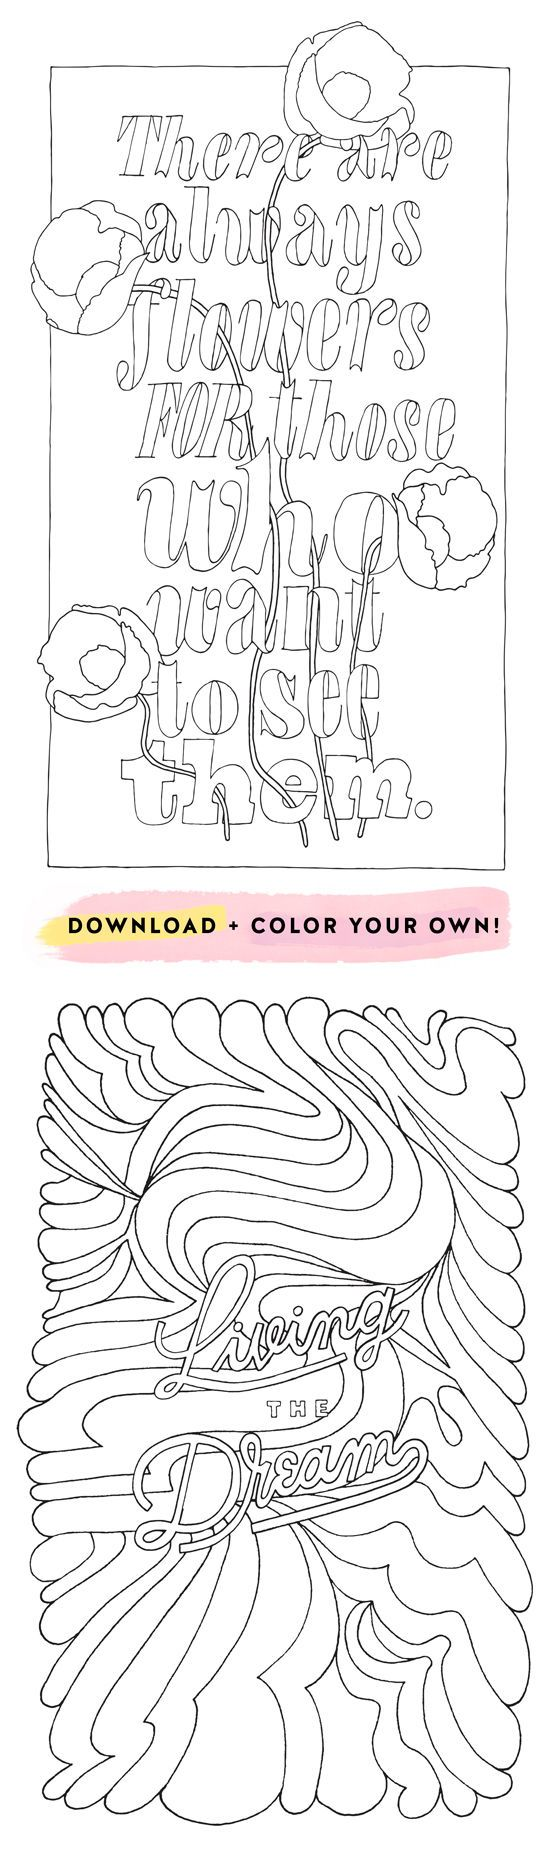 COLORING POSTERS PT. 2